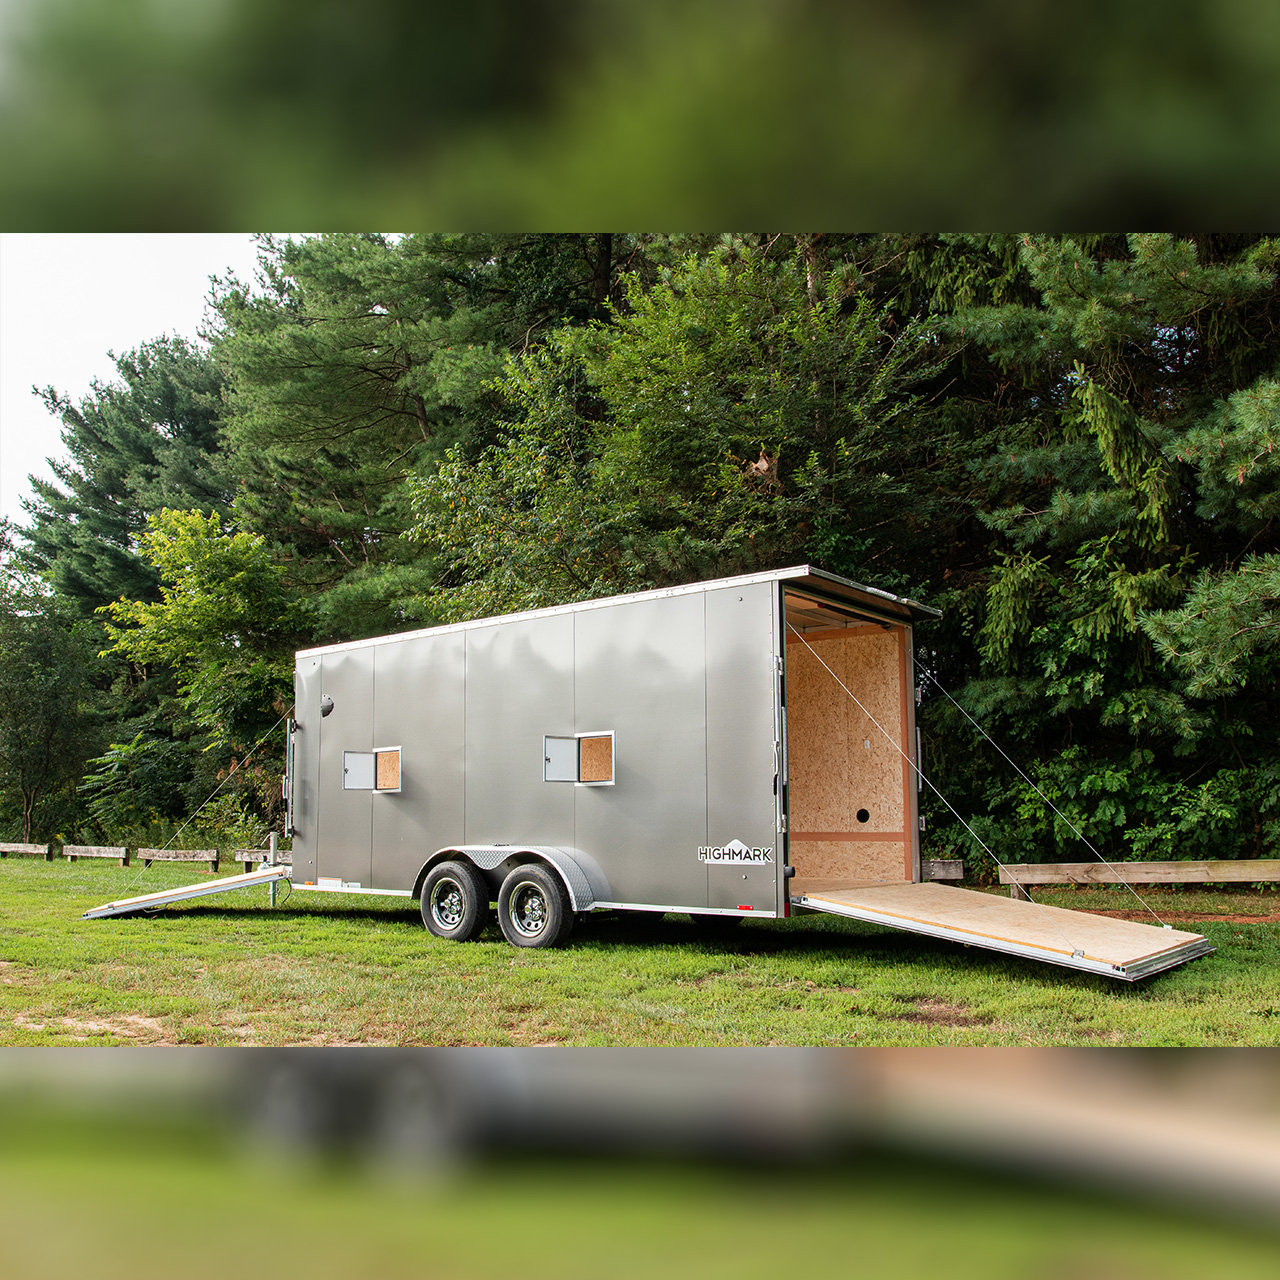 Highmark - Cargo Trailer - Motorcycle Trailer - Snowmobile Trailer - Pace American